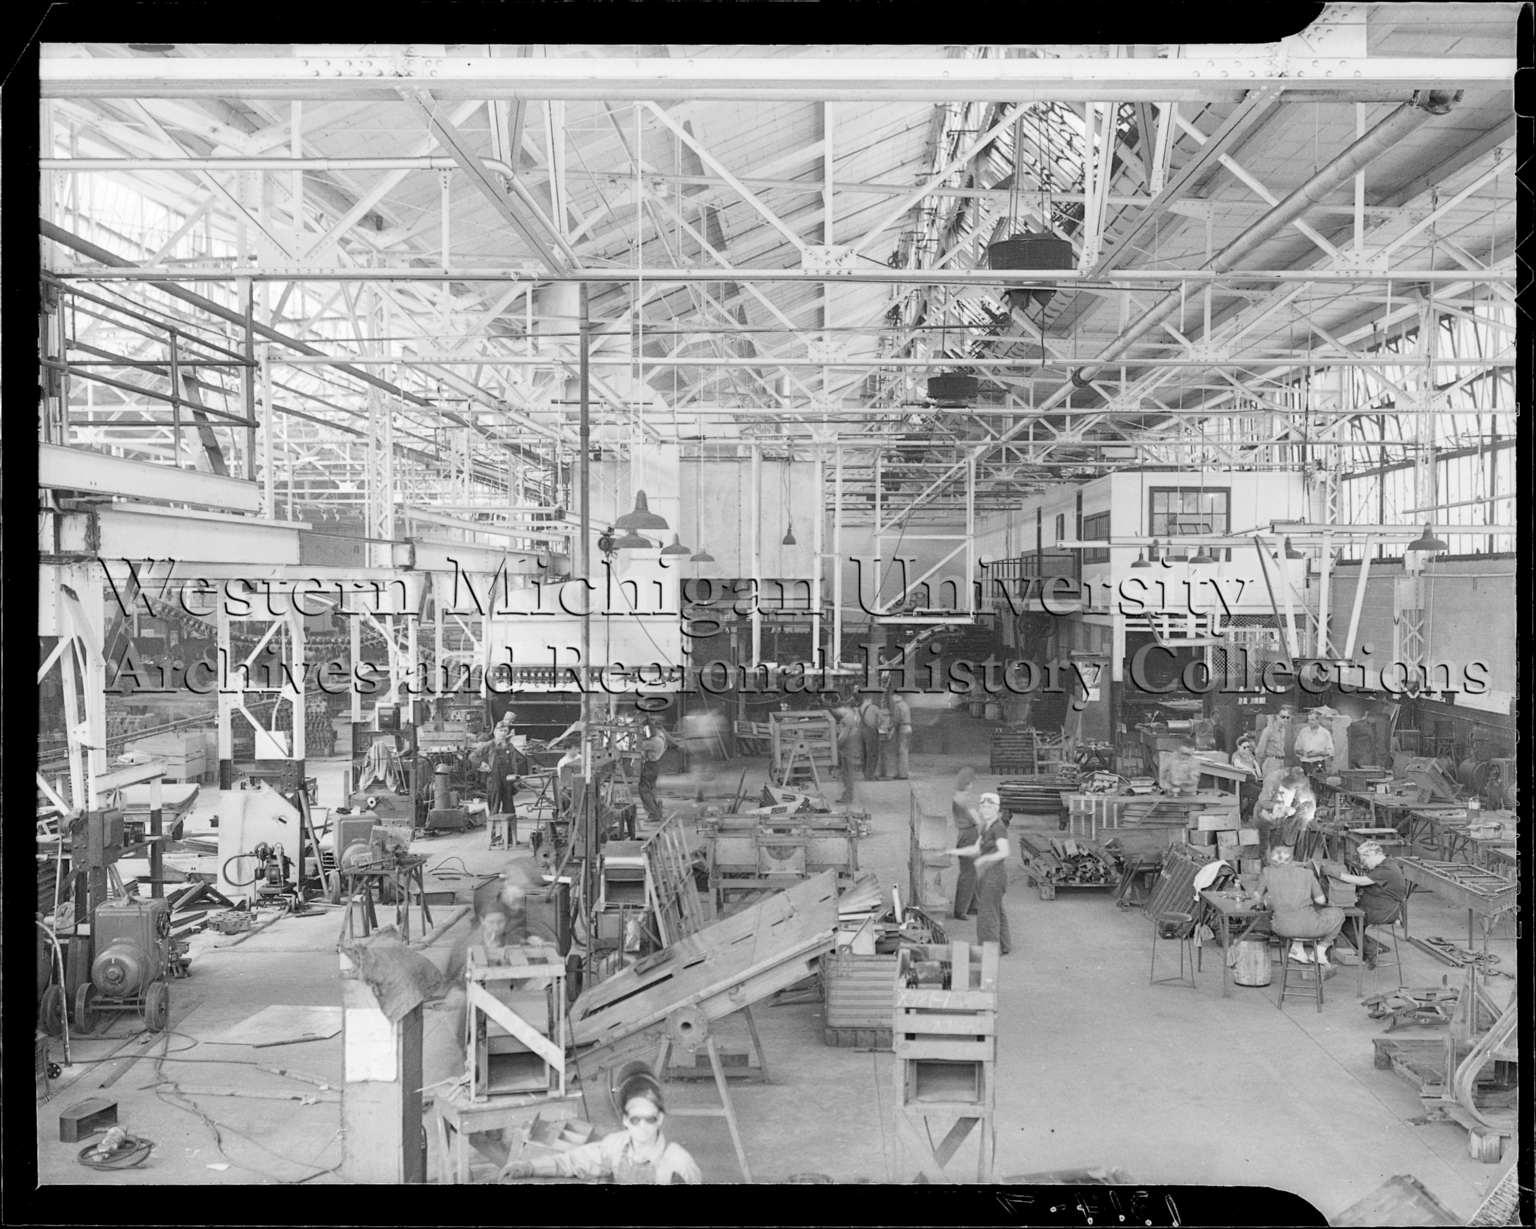 Ingersoll Steel, interior, employees in the production area